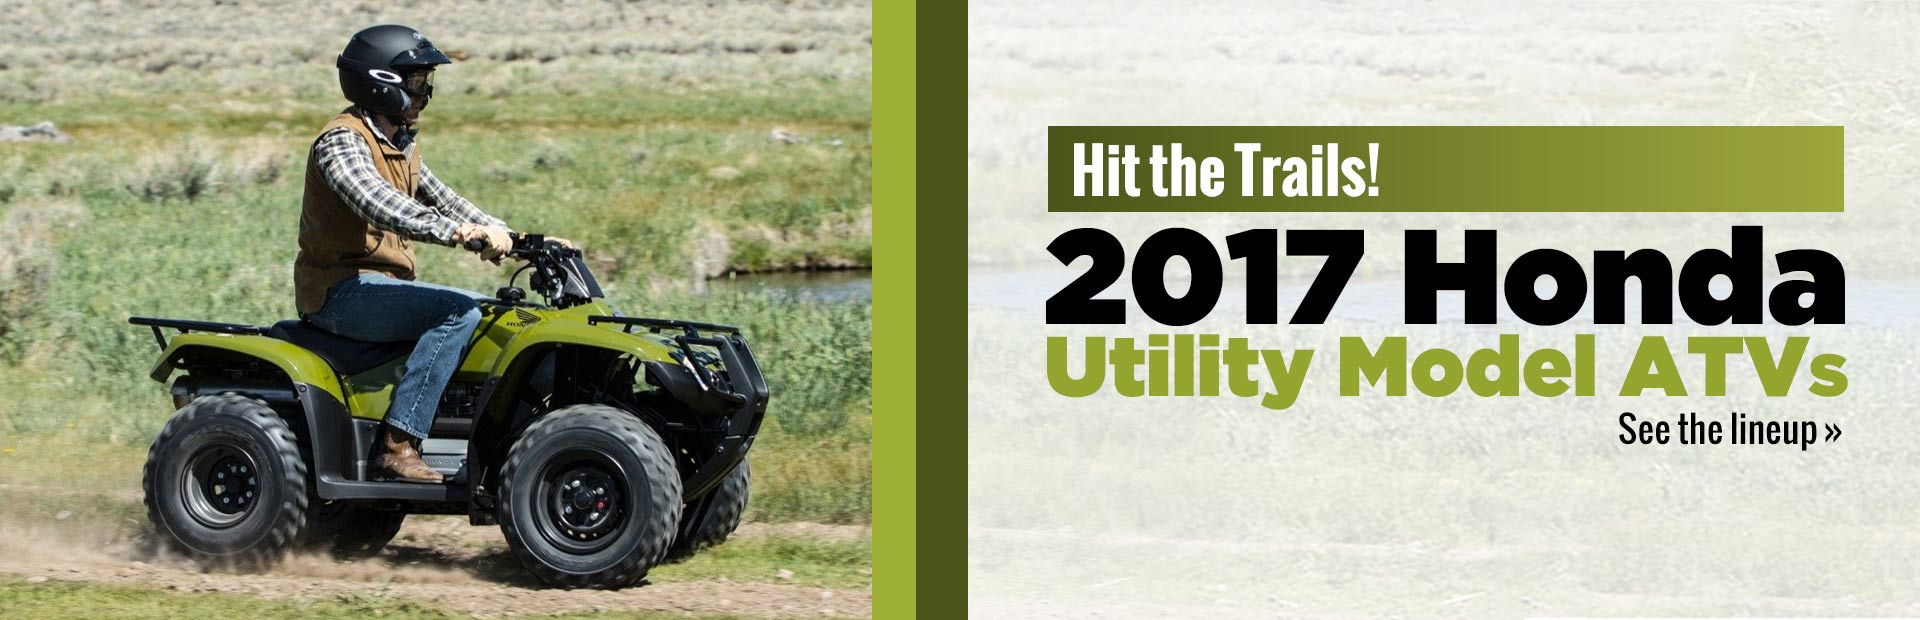 2017 Honda Utility Model ATVs: Click here to see the lineup.